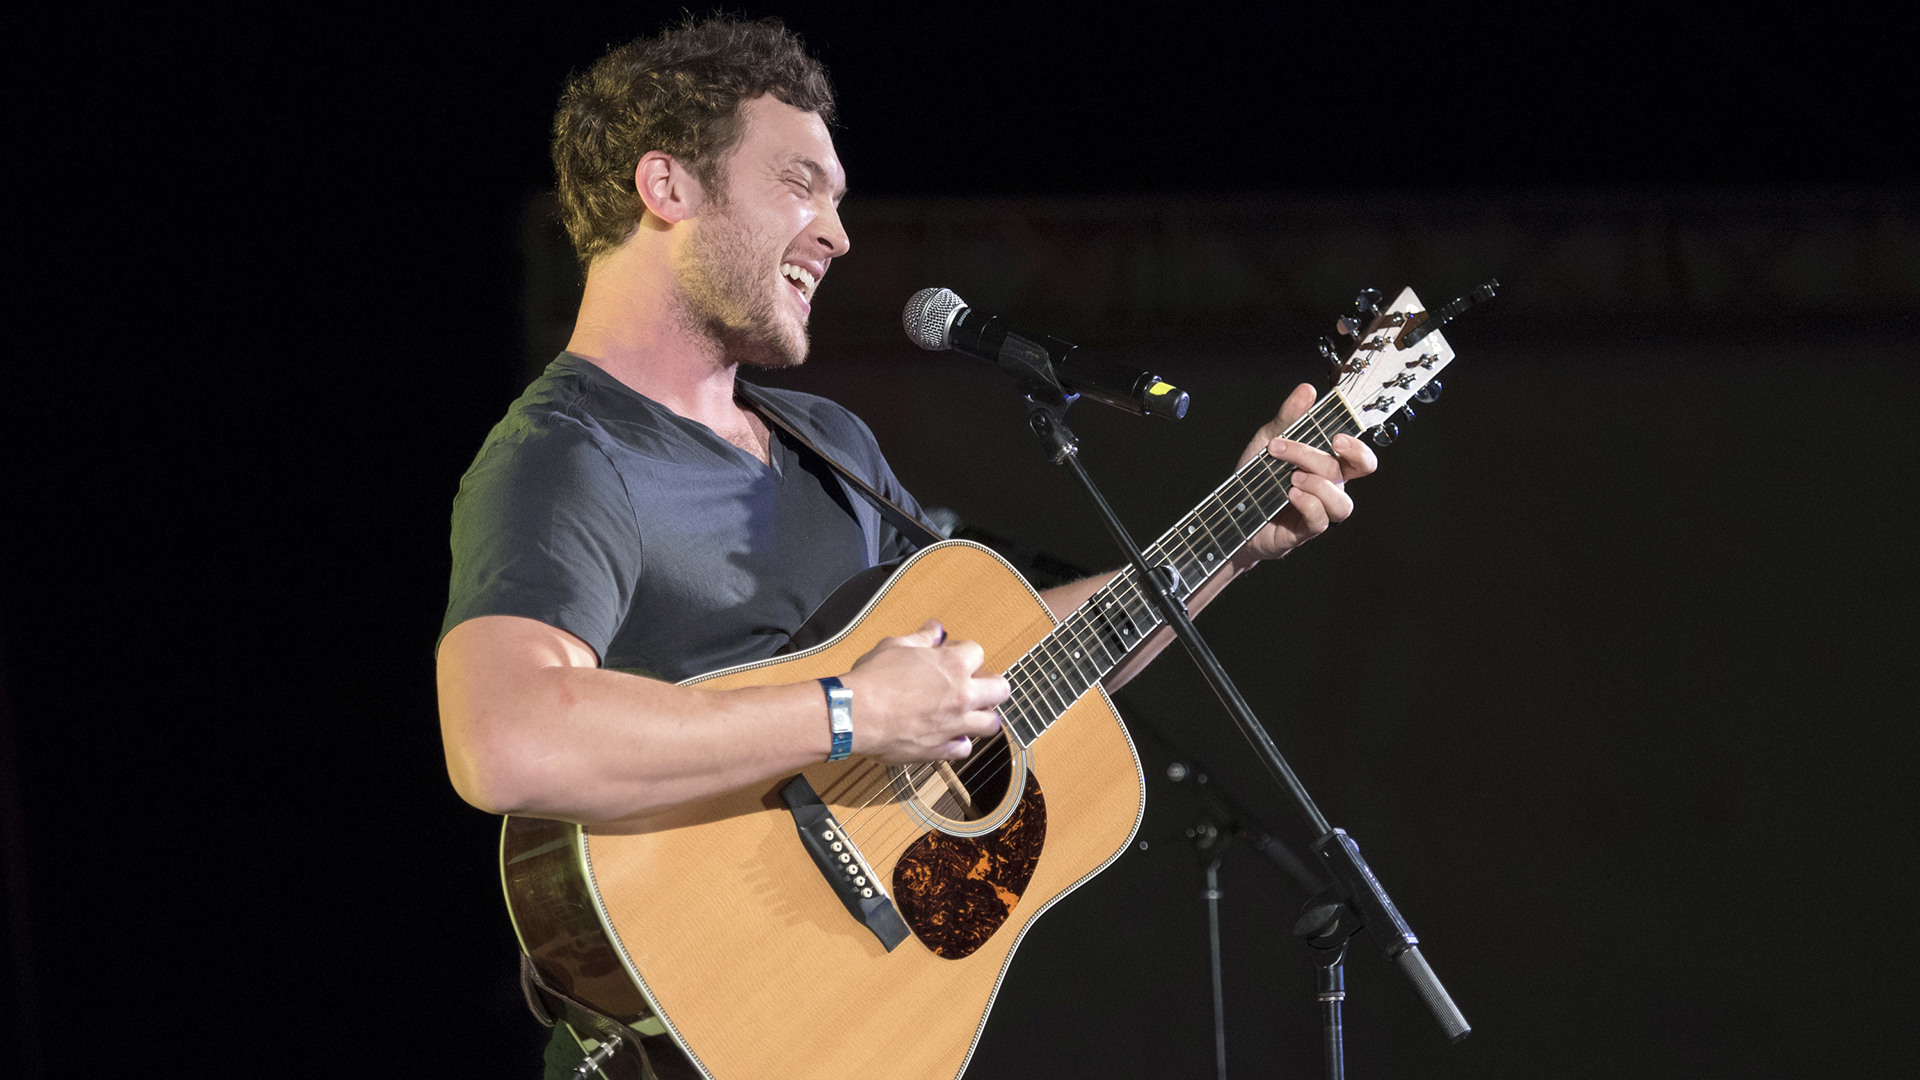 Musical artist Phillip Phillips performs for the crowd.